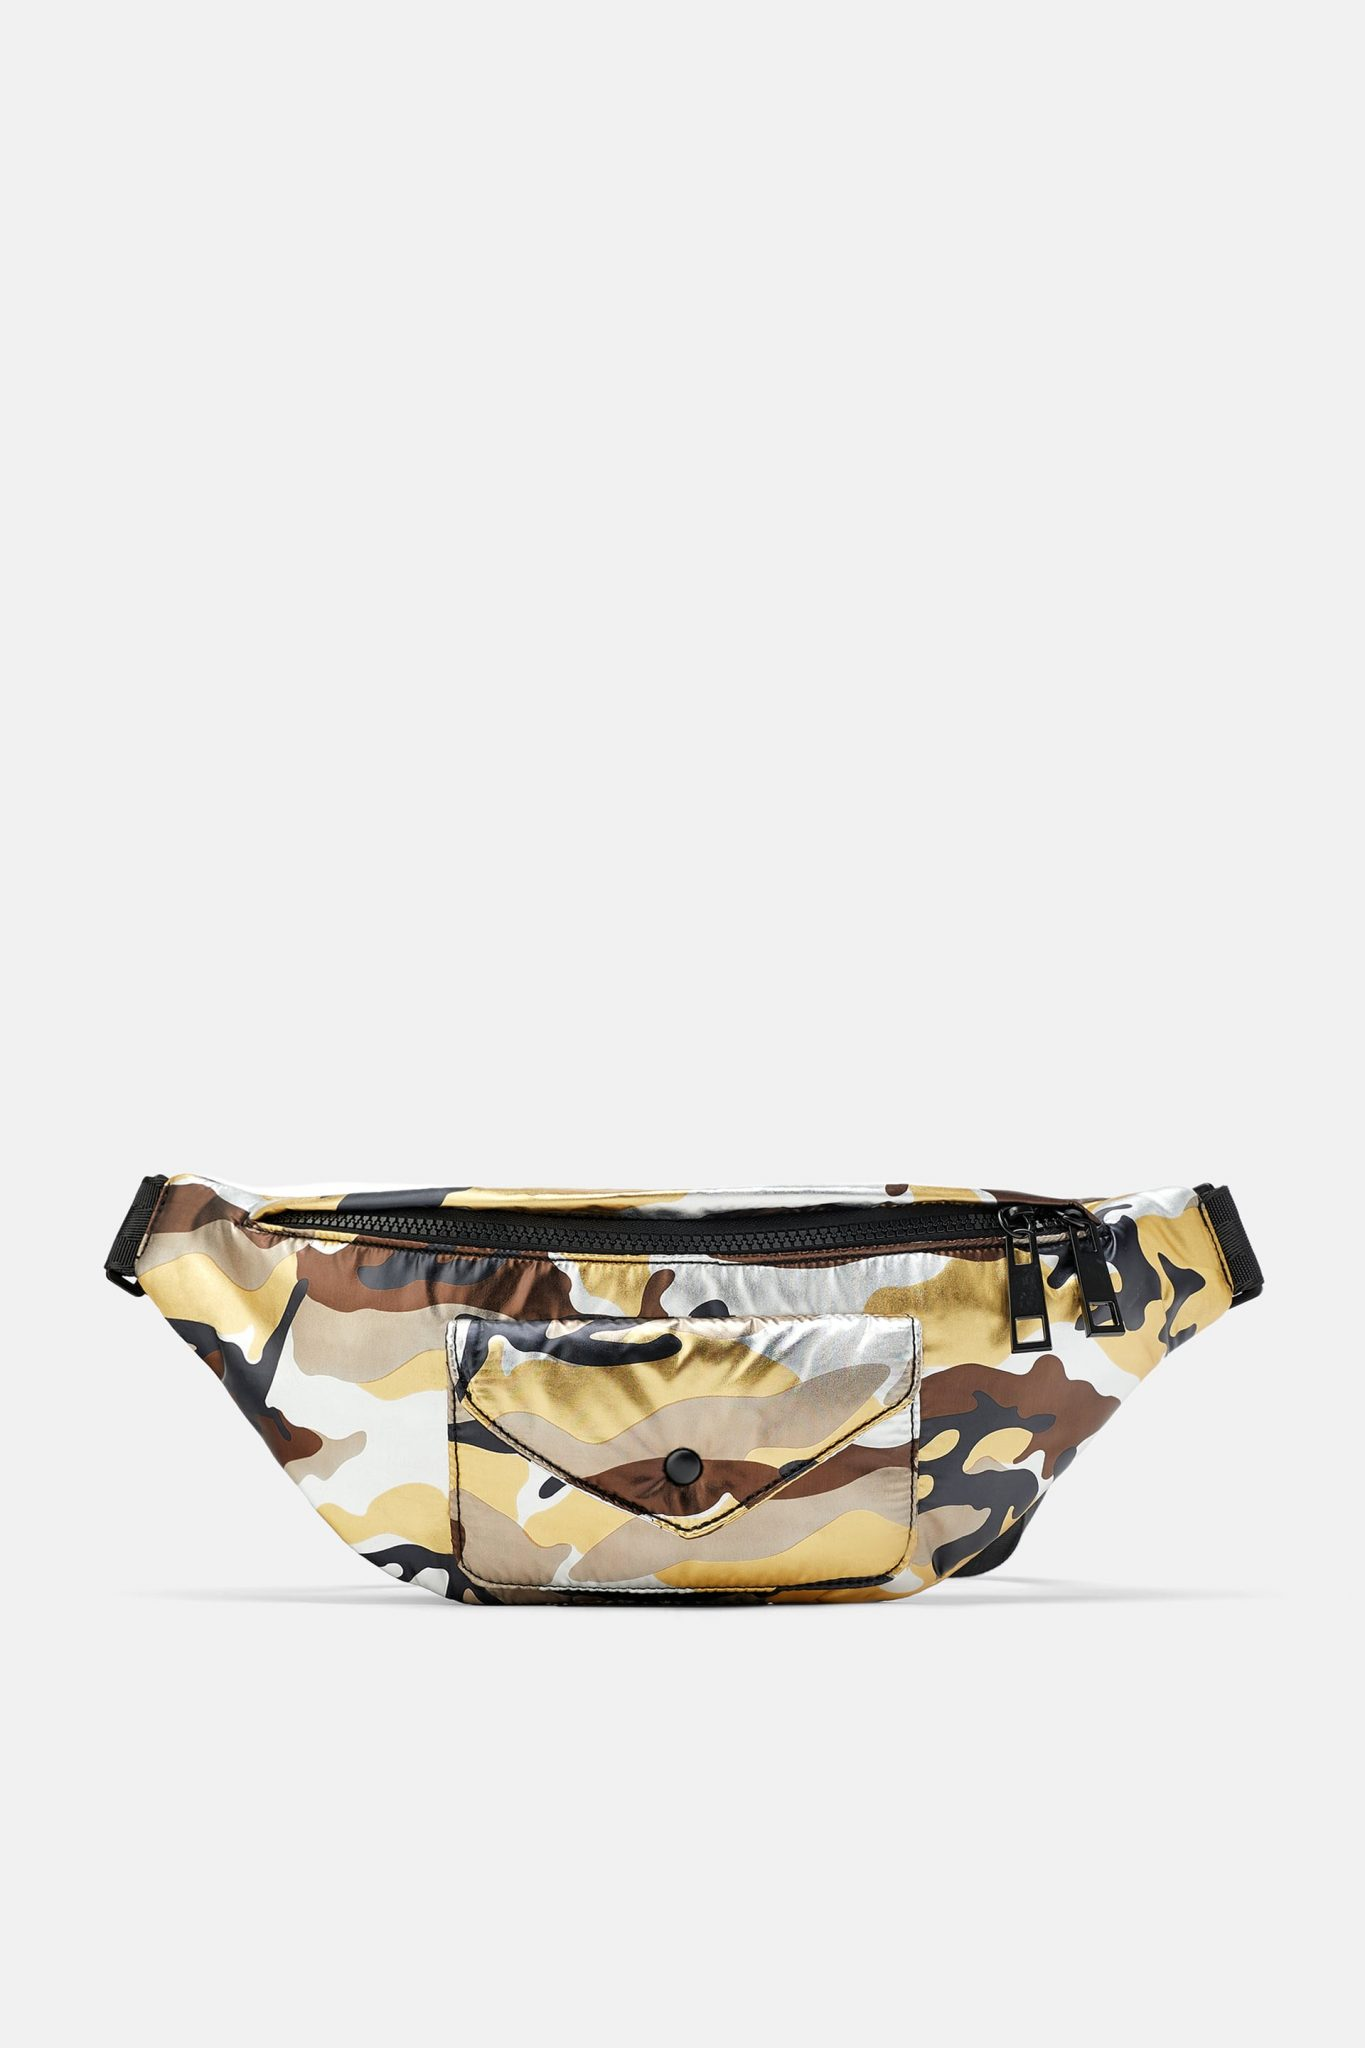 Festival style: 7 festival bags to buy for fun in the fields